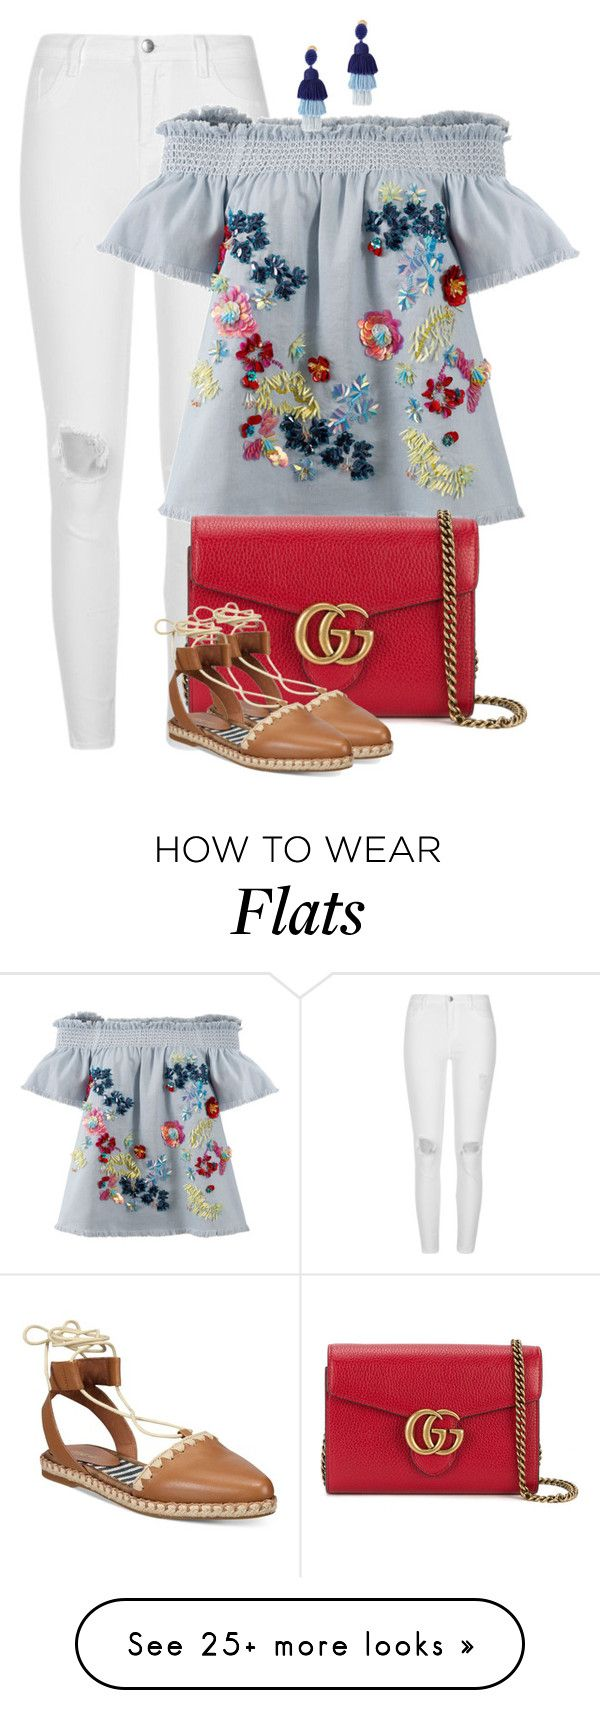 """Casual"" by ashley-loves on Polyvore featuring River Island, Tanya Taylor, Gucci, Nine West and Oscar de la Renta"